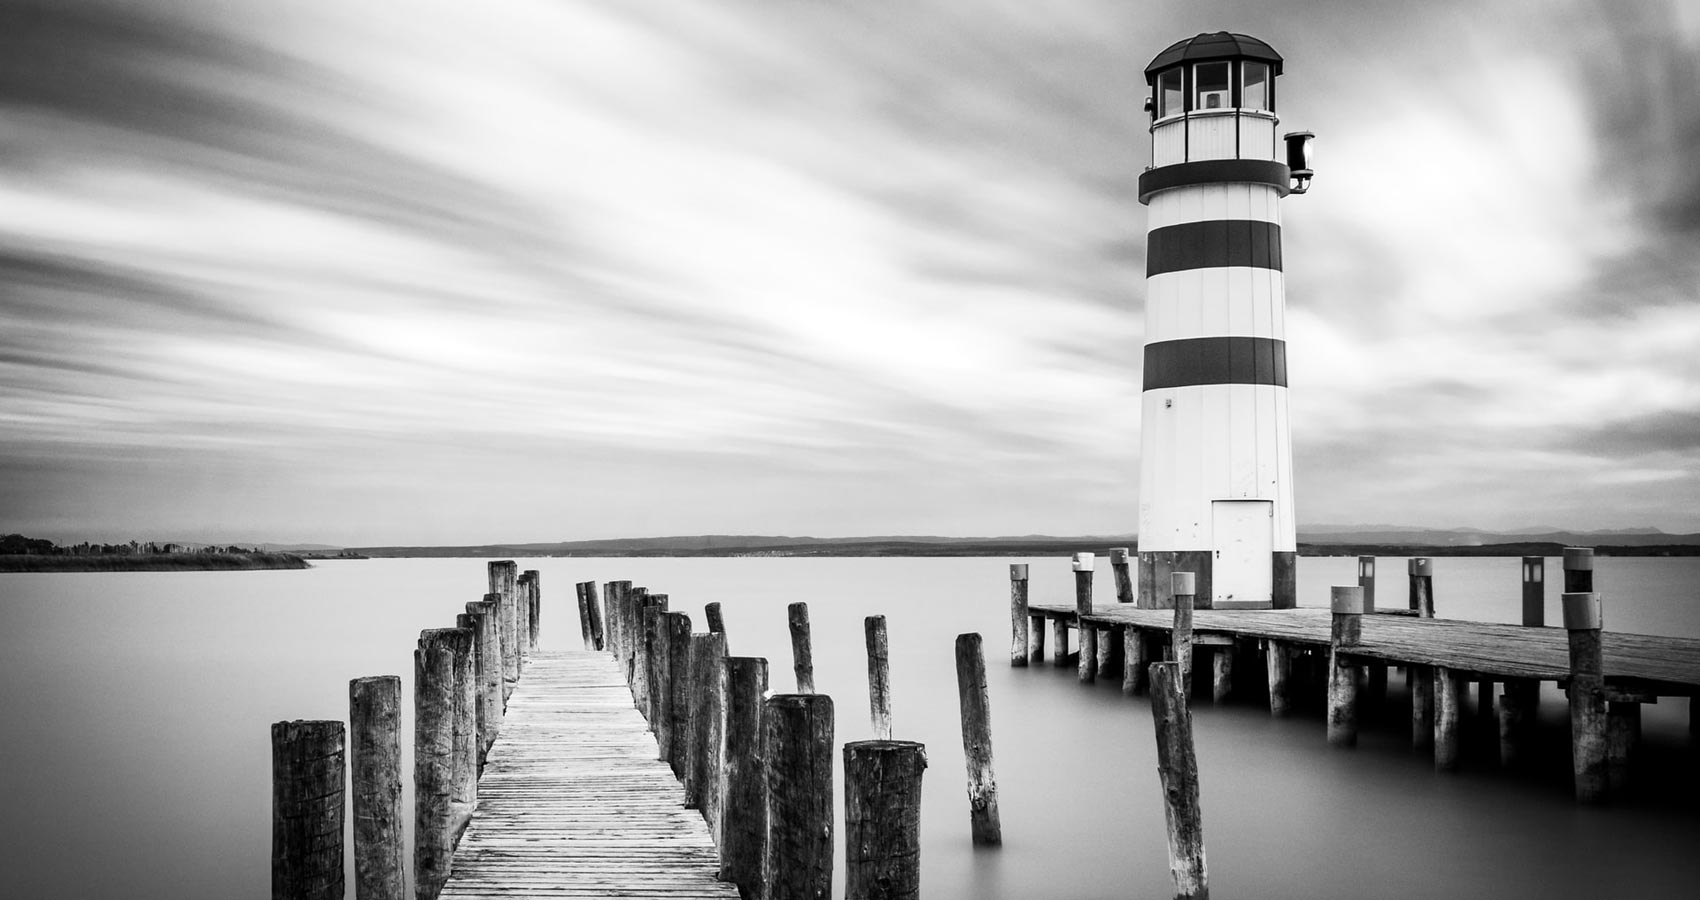 An Old Lighthouse Next to a Lonely Pier and a Cup of Coffee, flash fiction by Marcelo Medone at Spillwords.com